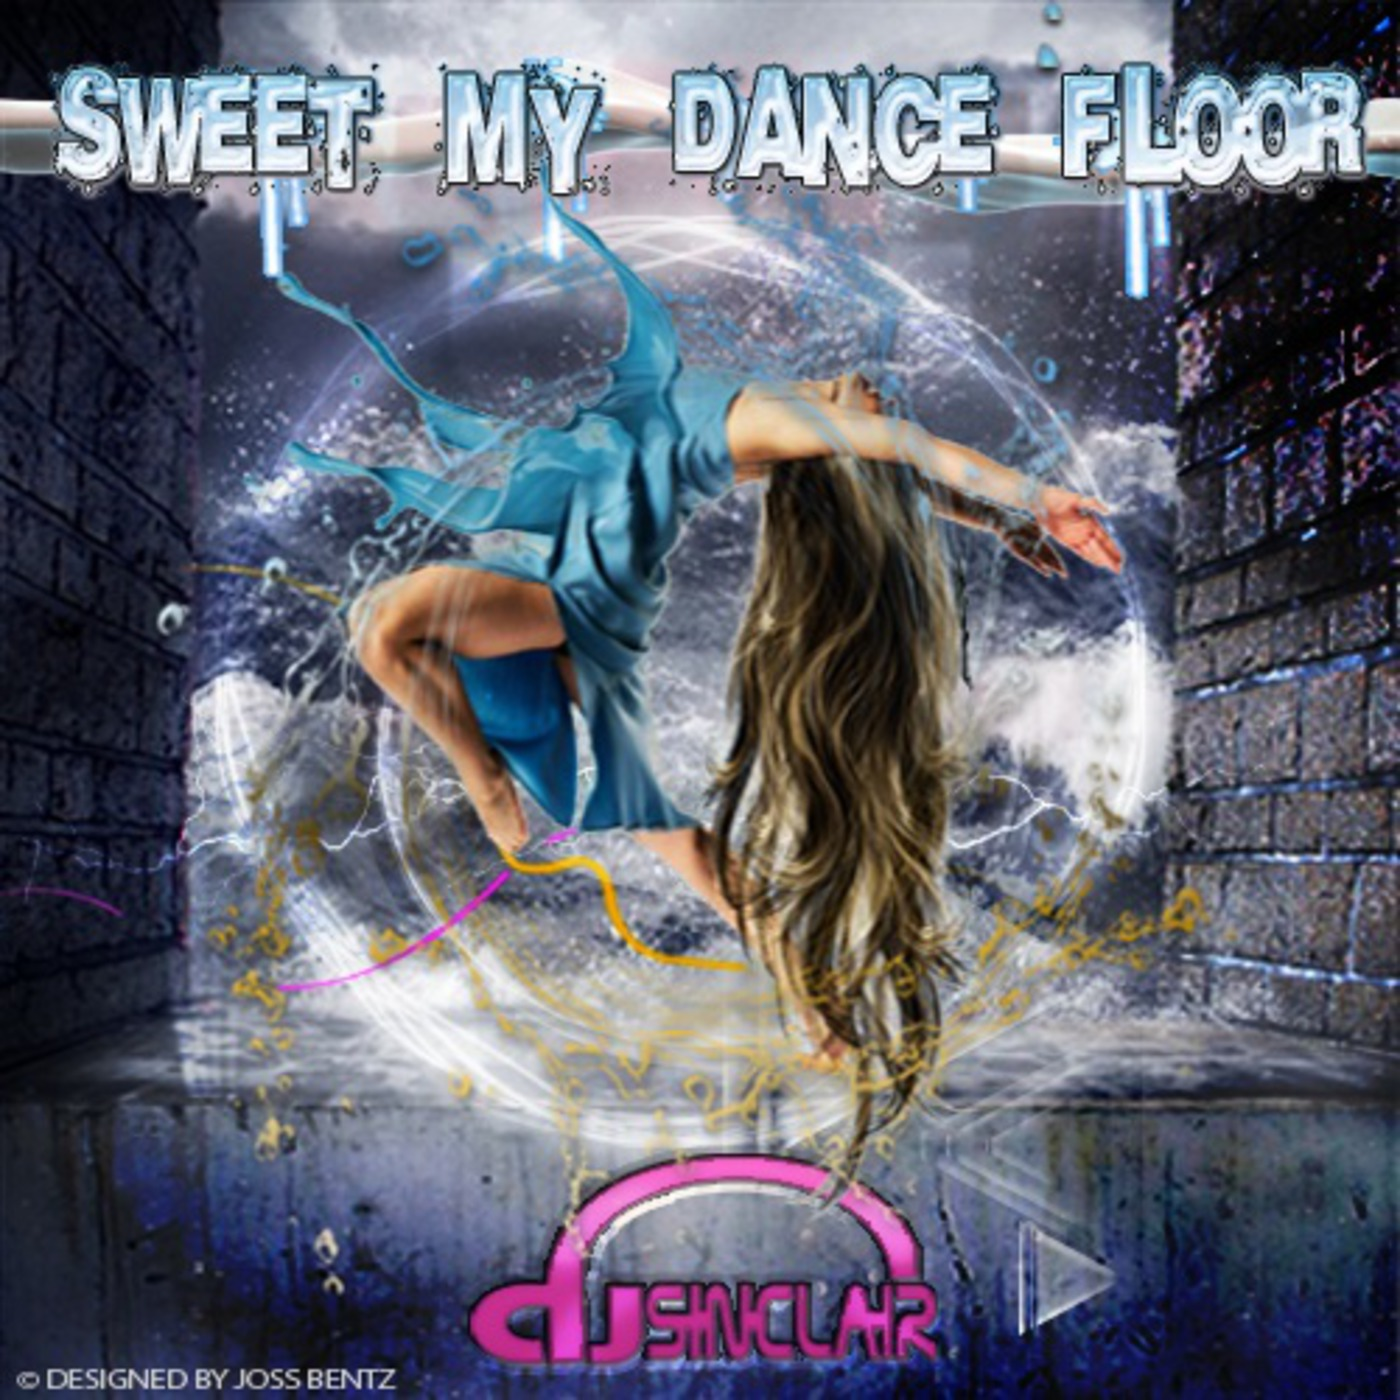 SWEET my DANCEFLOOR ep1